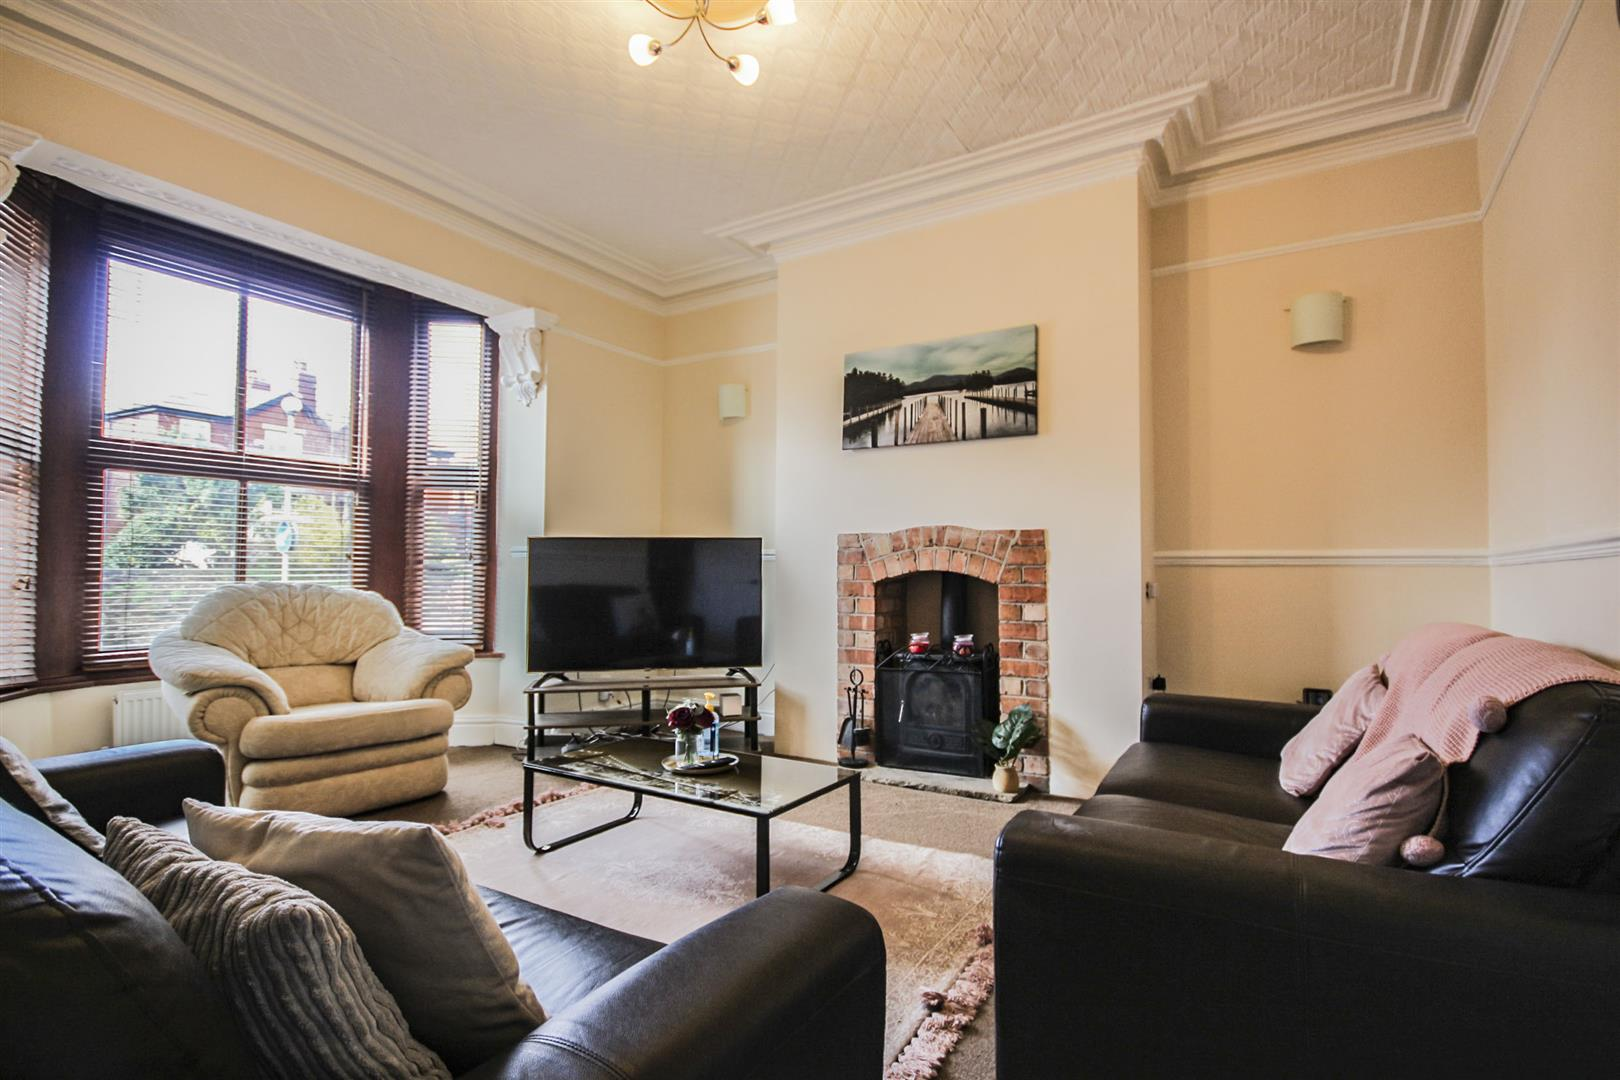 5 Bedroom Mid Terrace House For Sale - Main Image